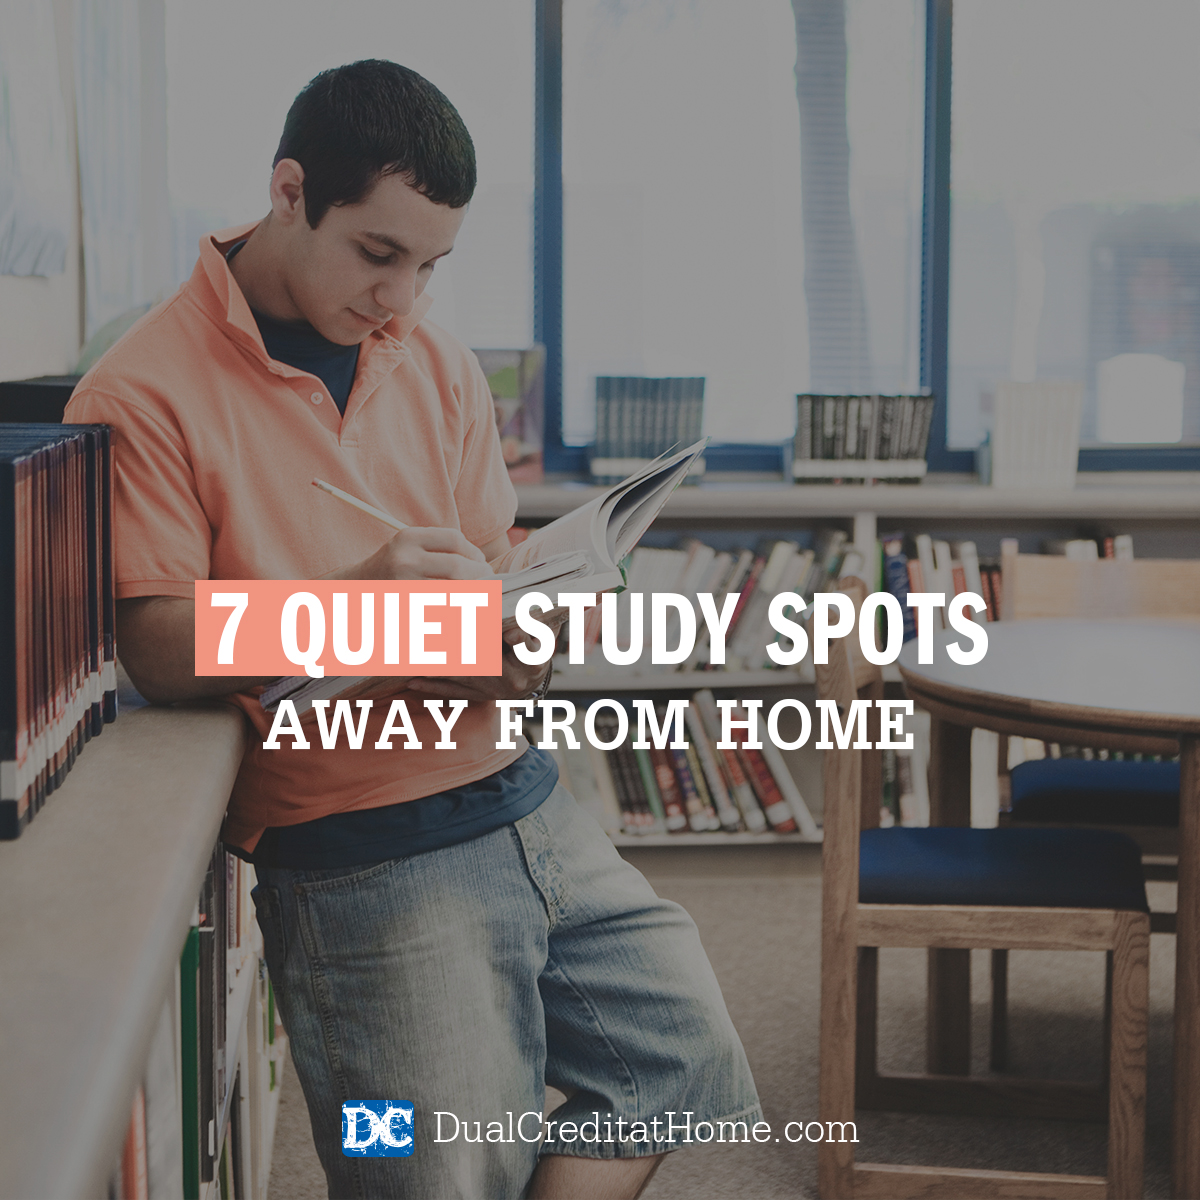 7 Quiet Study Spots Away from Home